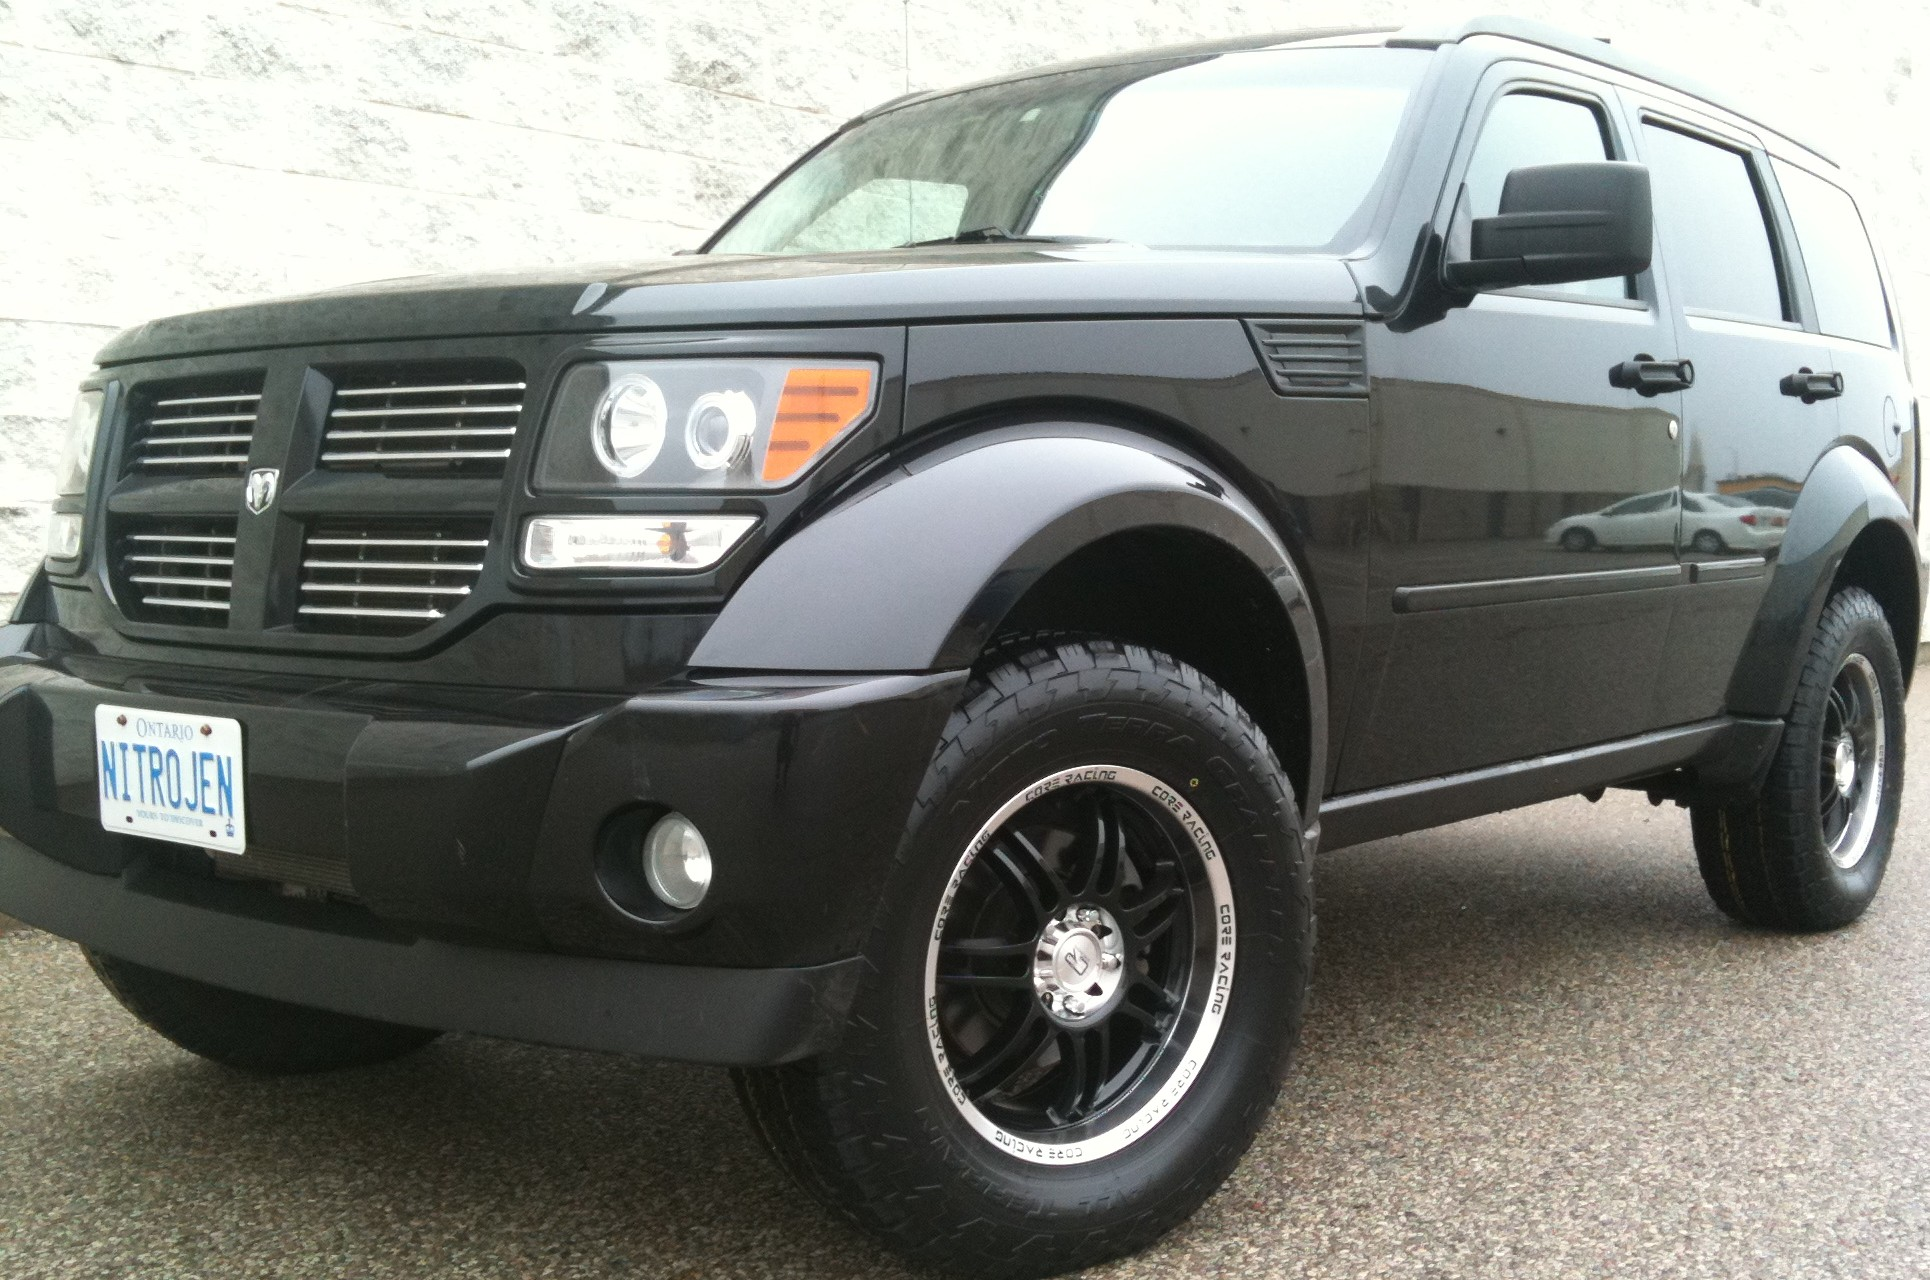 2013 dodge ram 1500 review specs and price new car autos post. Black Bedroom Furniture Sets. Home Design Ideas